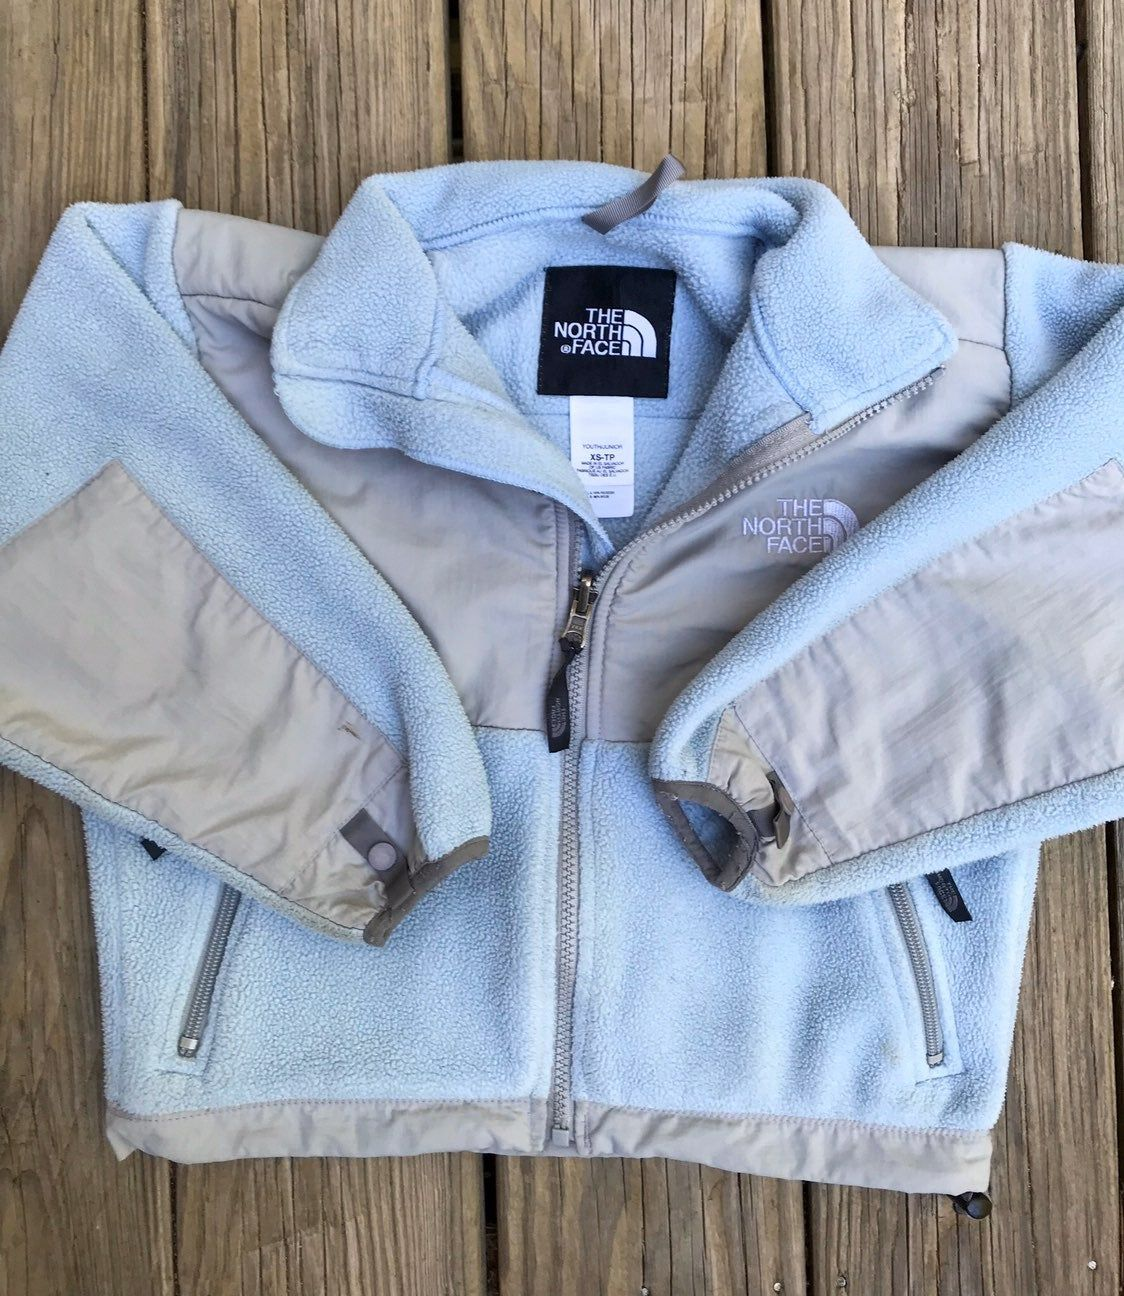 Thick North Face Fleece Jacket In Light Blue And Light Gray Has Some Wash Wear And A Few Spots On The Sl North Face Fleece Jacket Fleece Jacket The North Face [ 1296 x 1124 Pixel ]